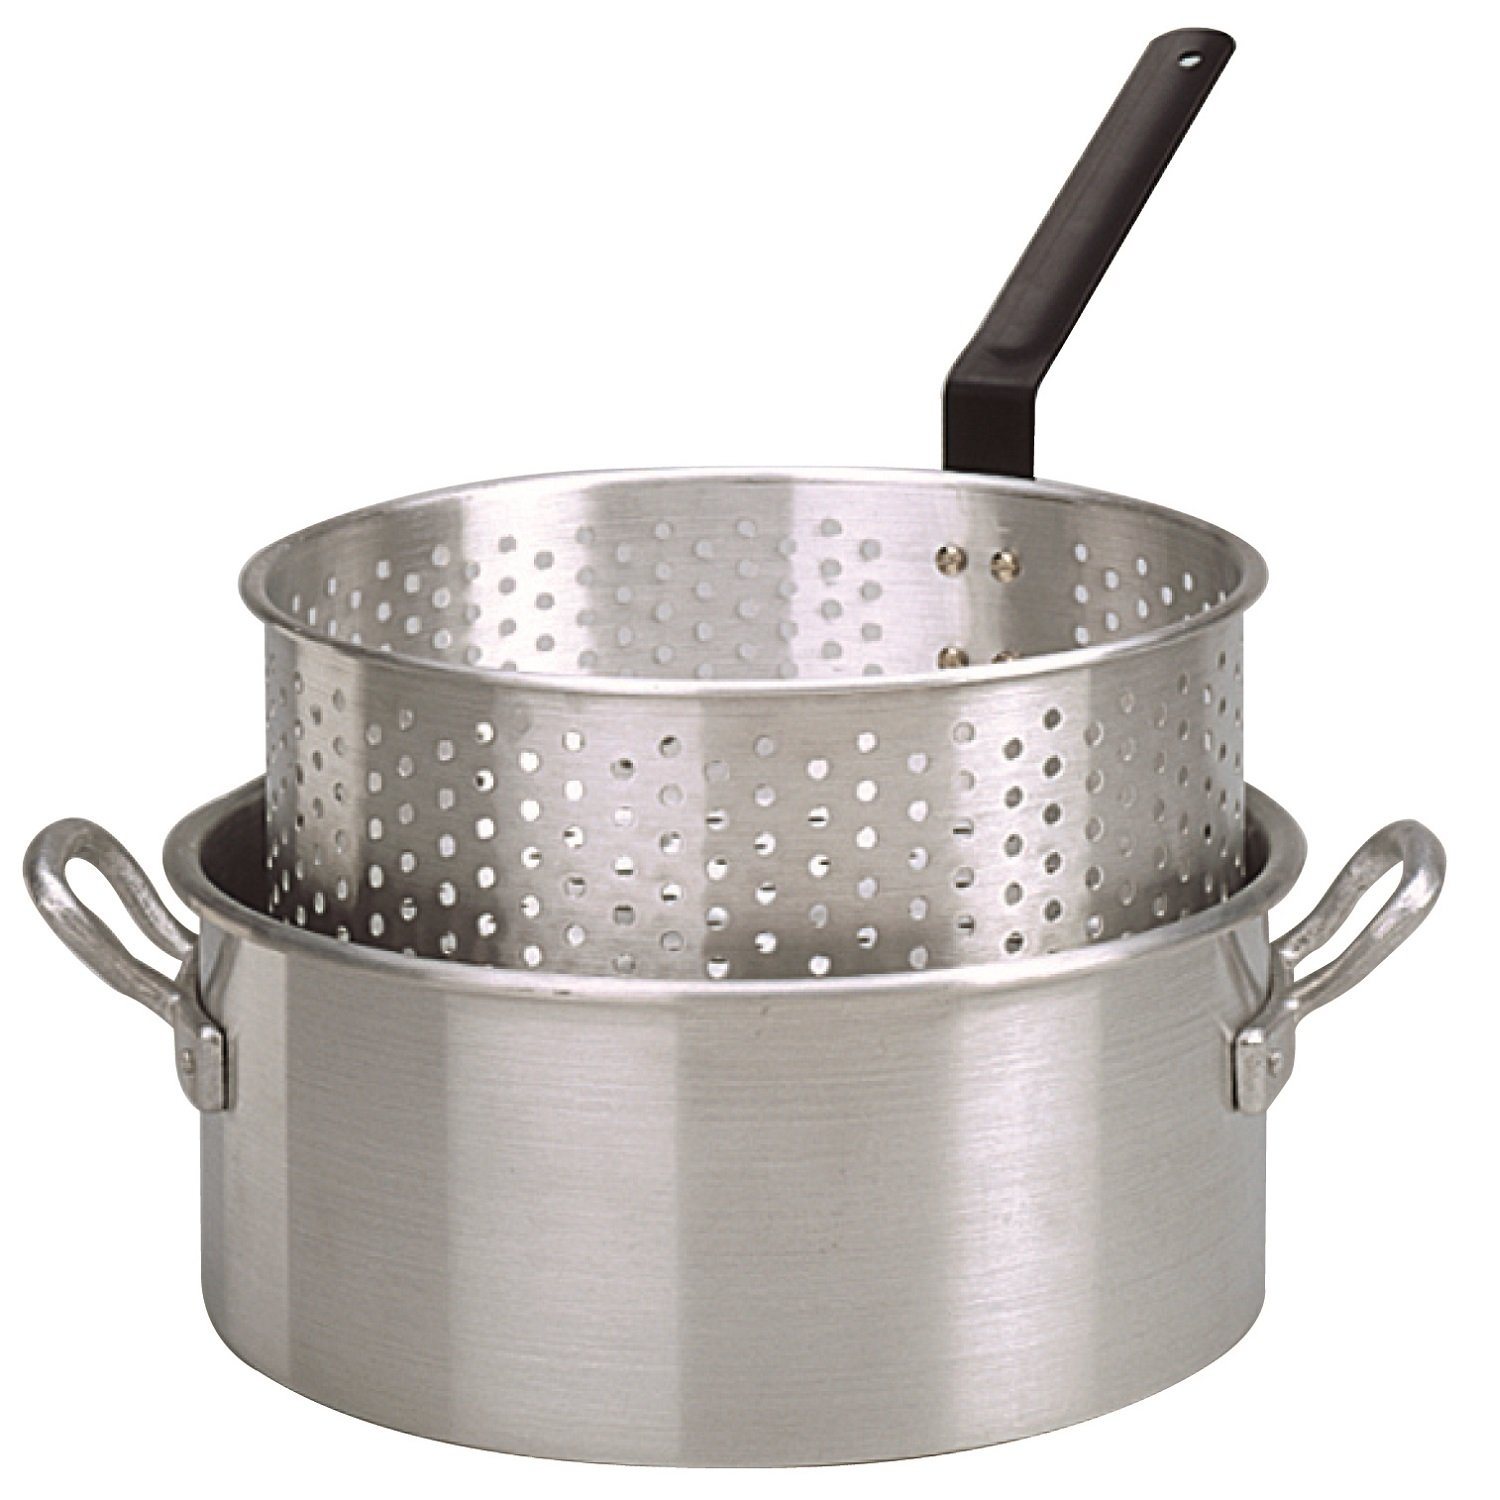 King Kooker KK2 9-Quart Aluminum Fry Pan with Basket by King Kooker